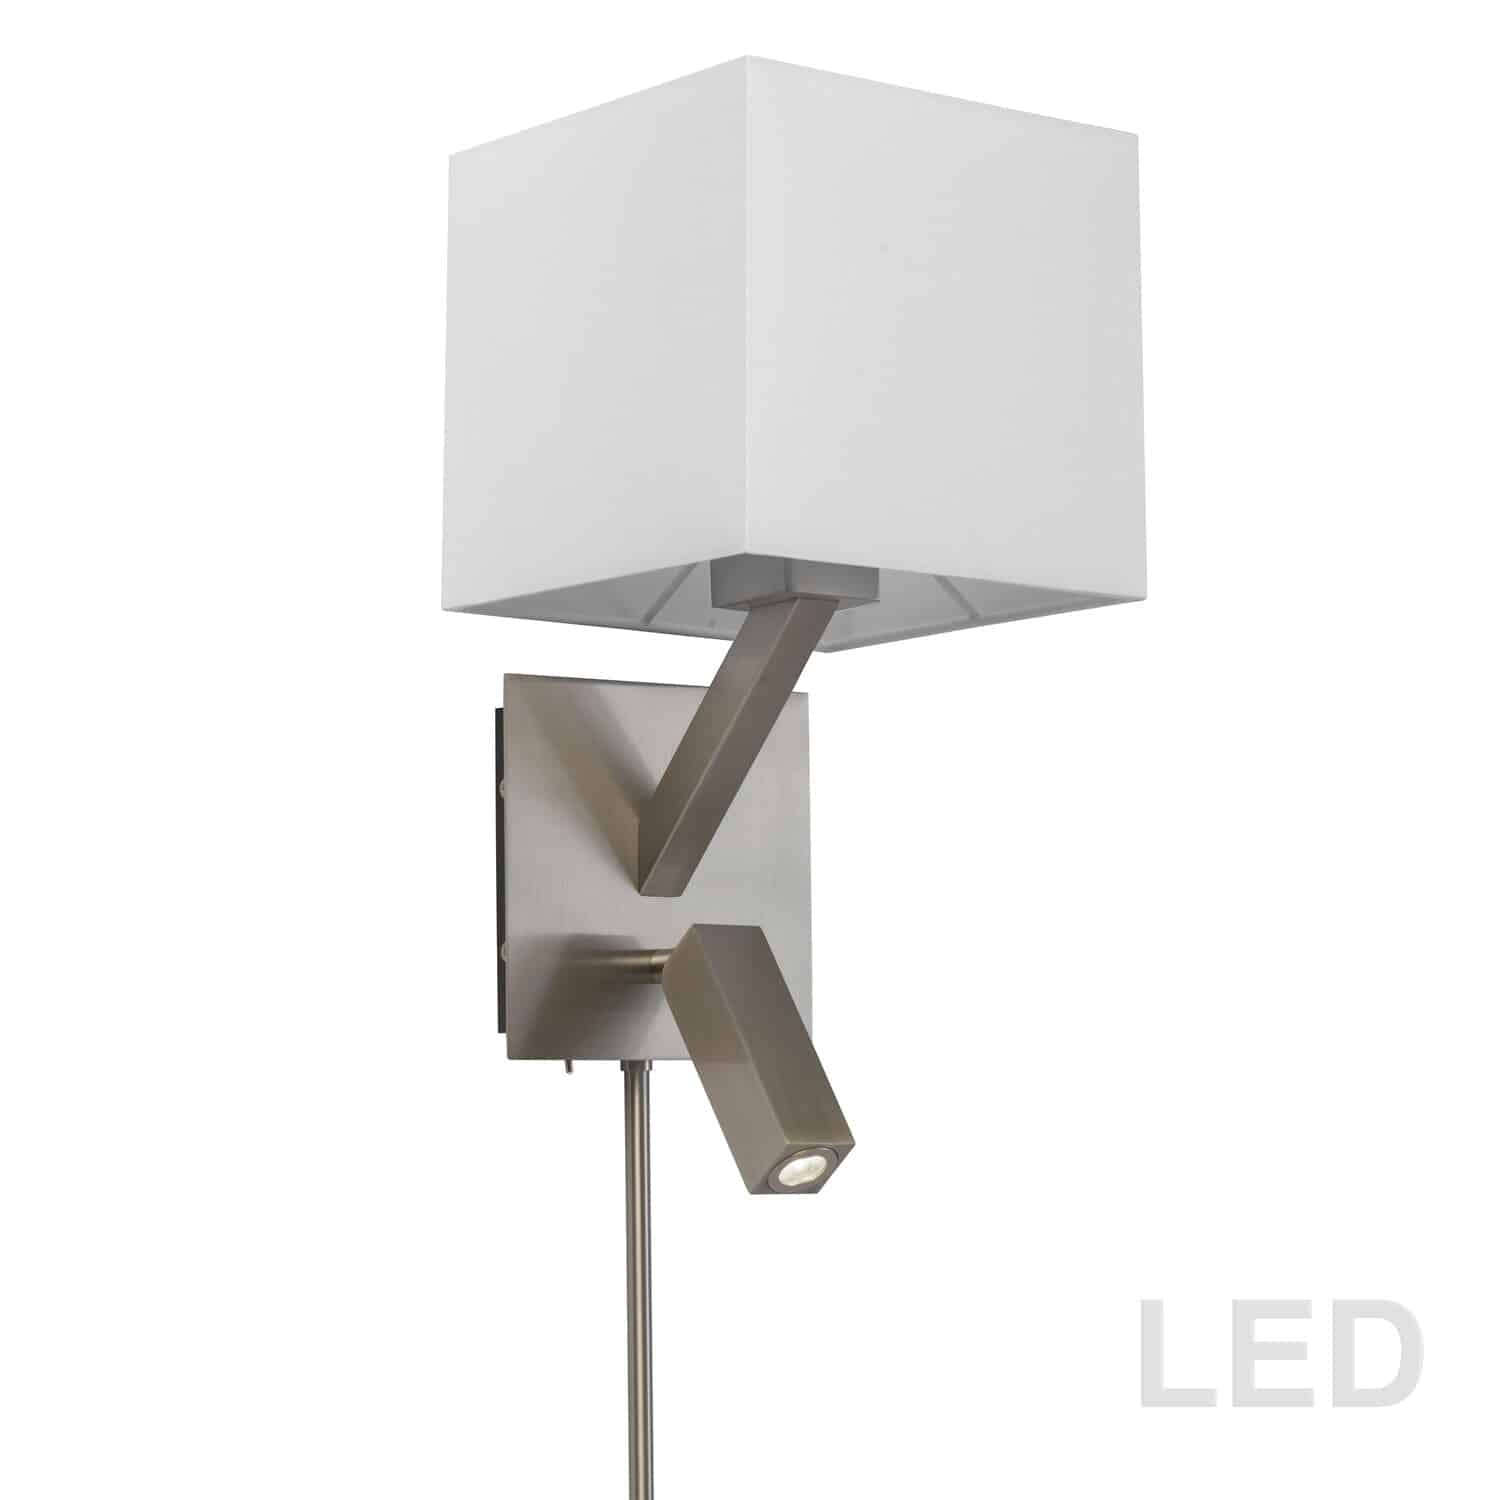 1 Light, 1 Downlight  LED Wall Sconce, Satin Chrome Finish with White Shade